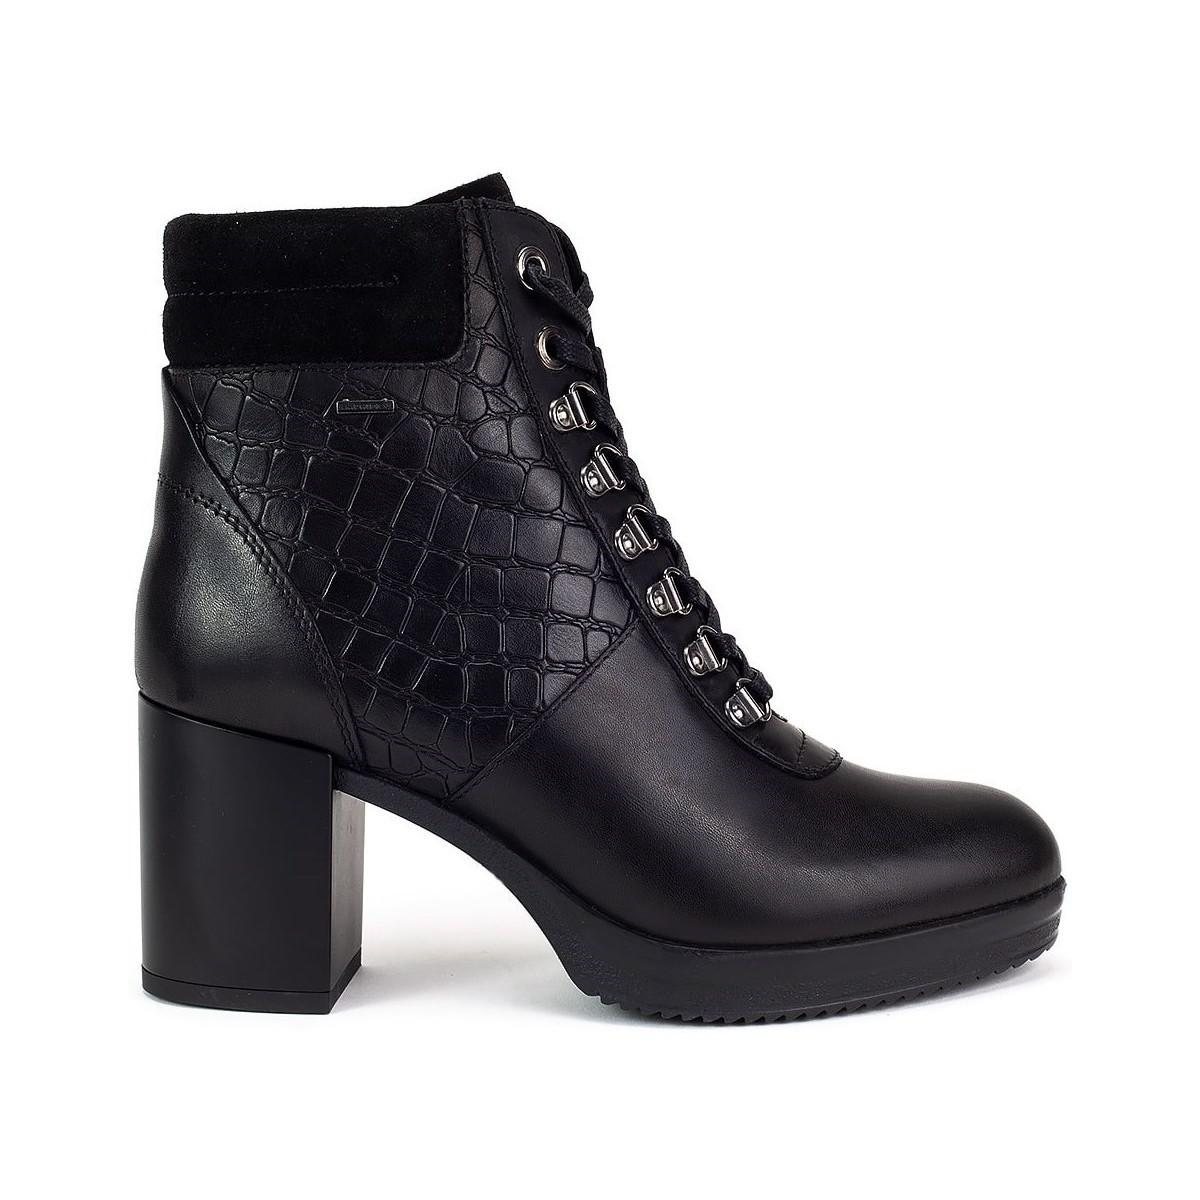 In Abx Black Remigia Ankle Lyst Geox Women's Boots Low ZYPnvx5q